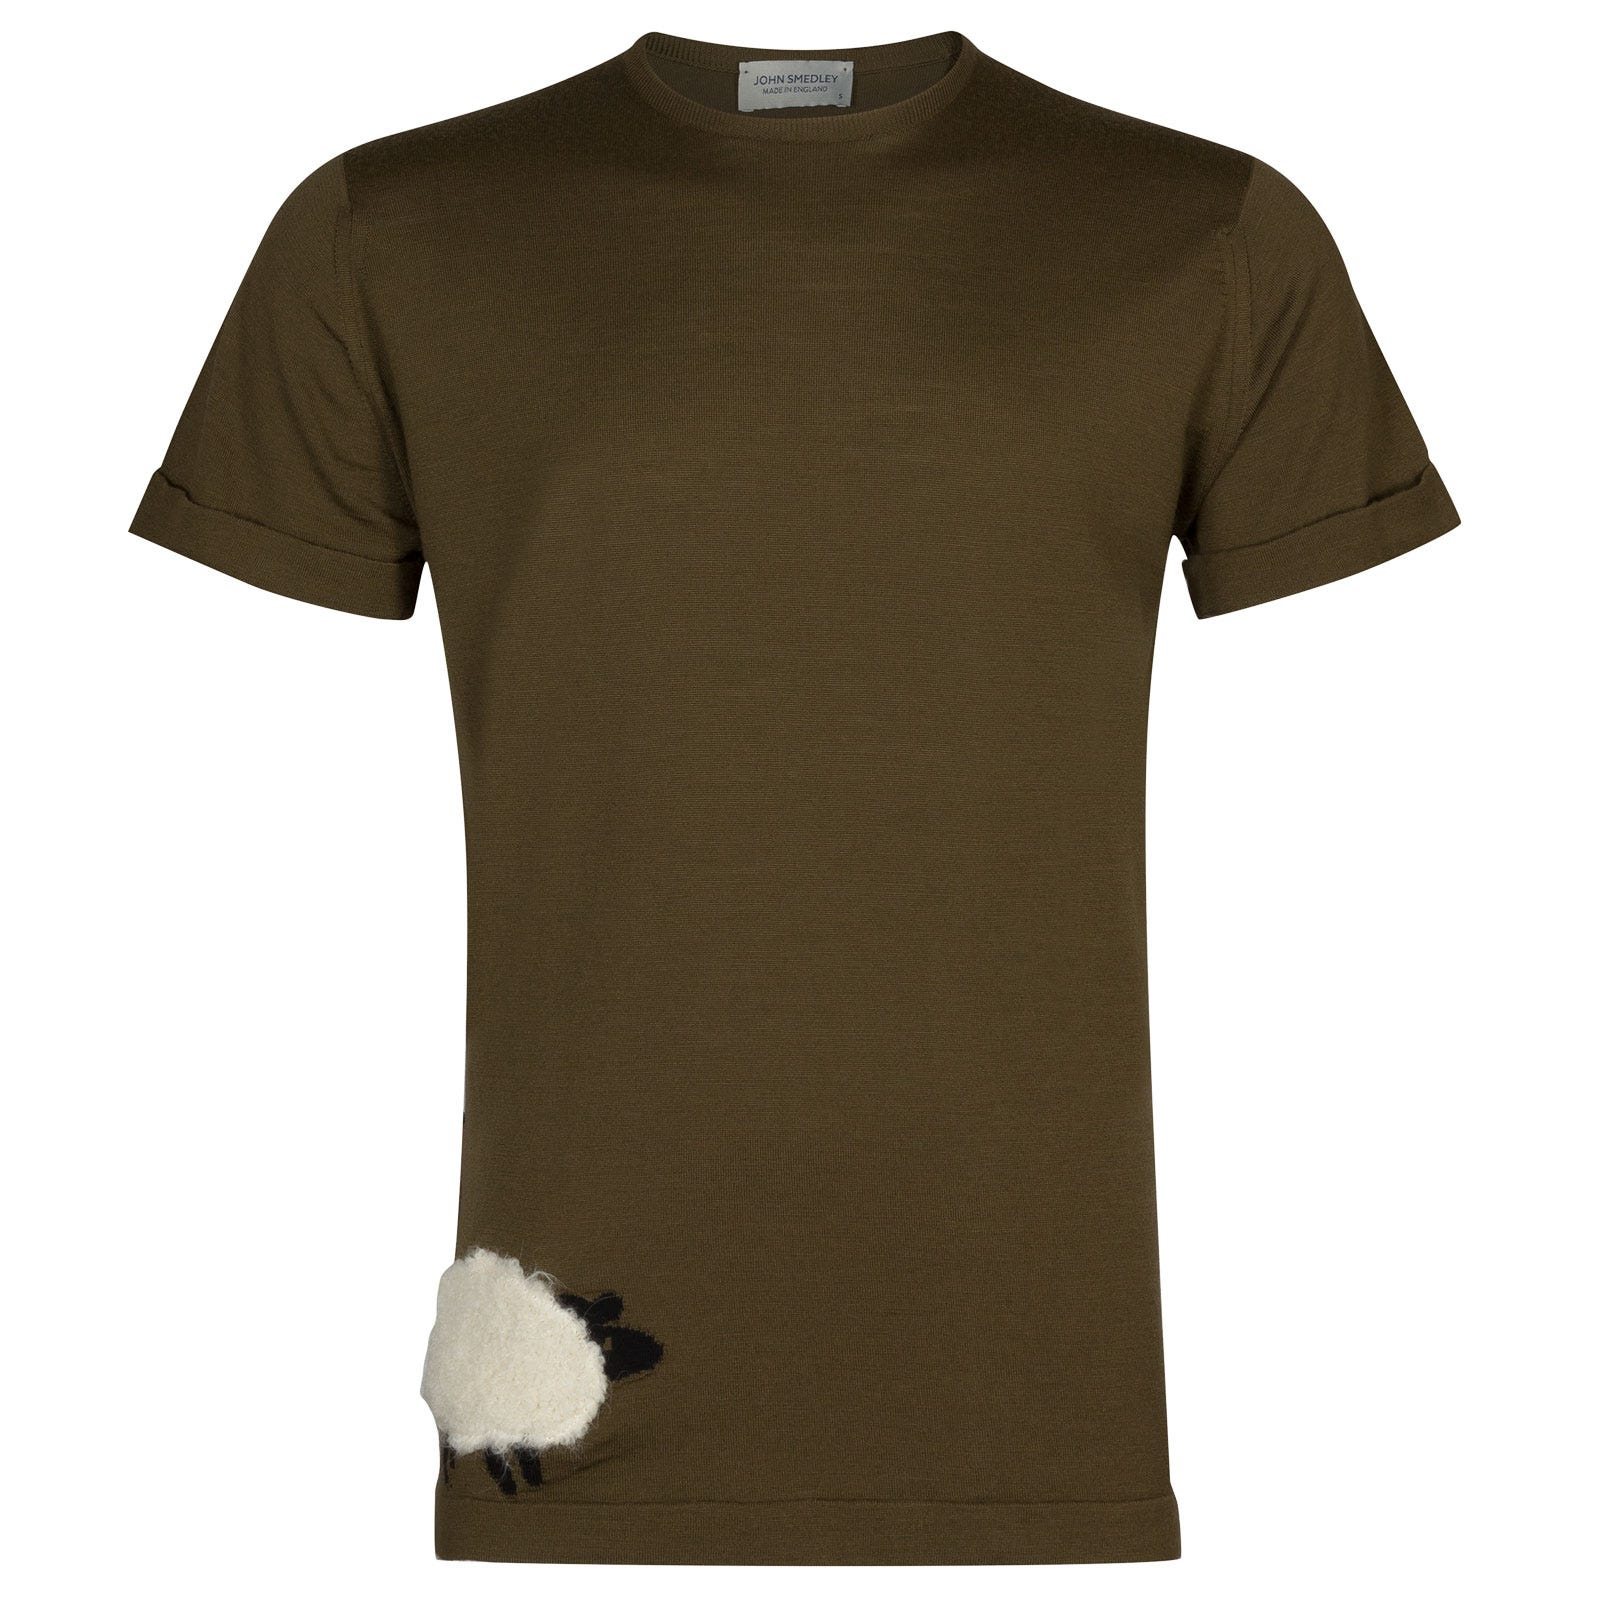 John Smedley bleat Merino Wool T-shirt in Kielder Green/Snow White-M